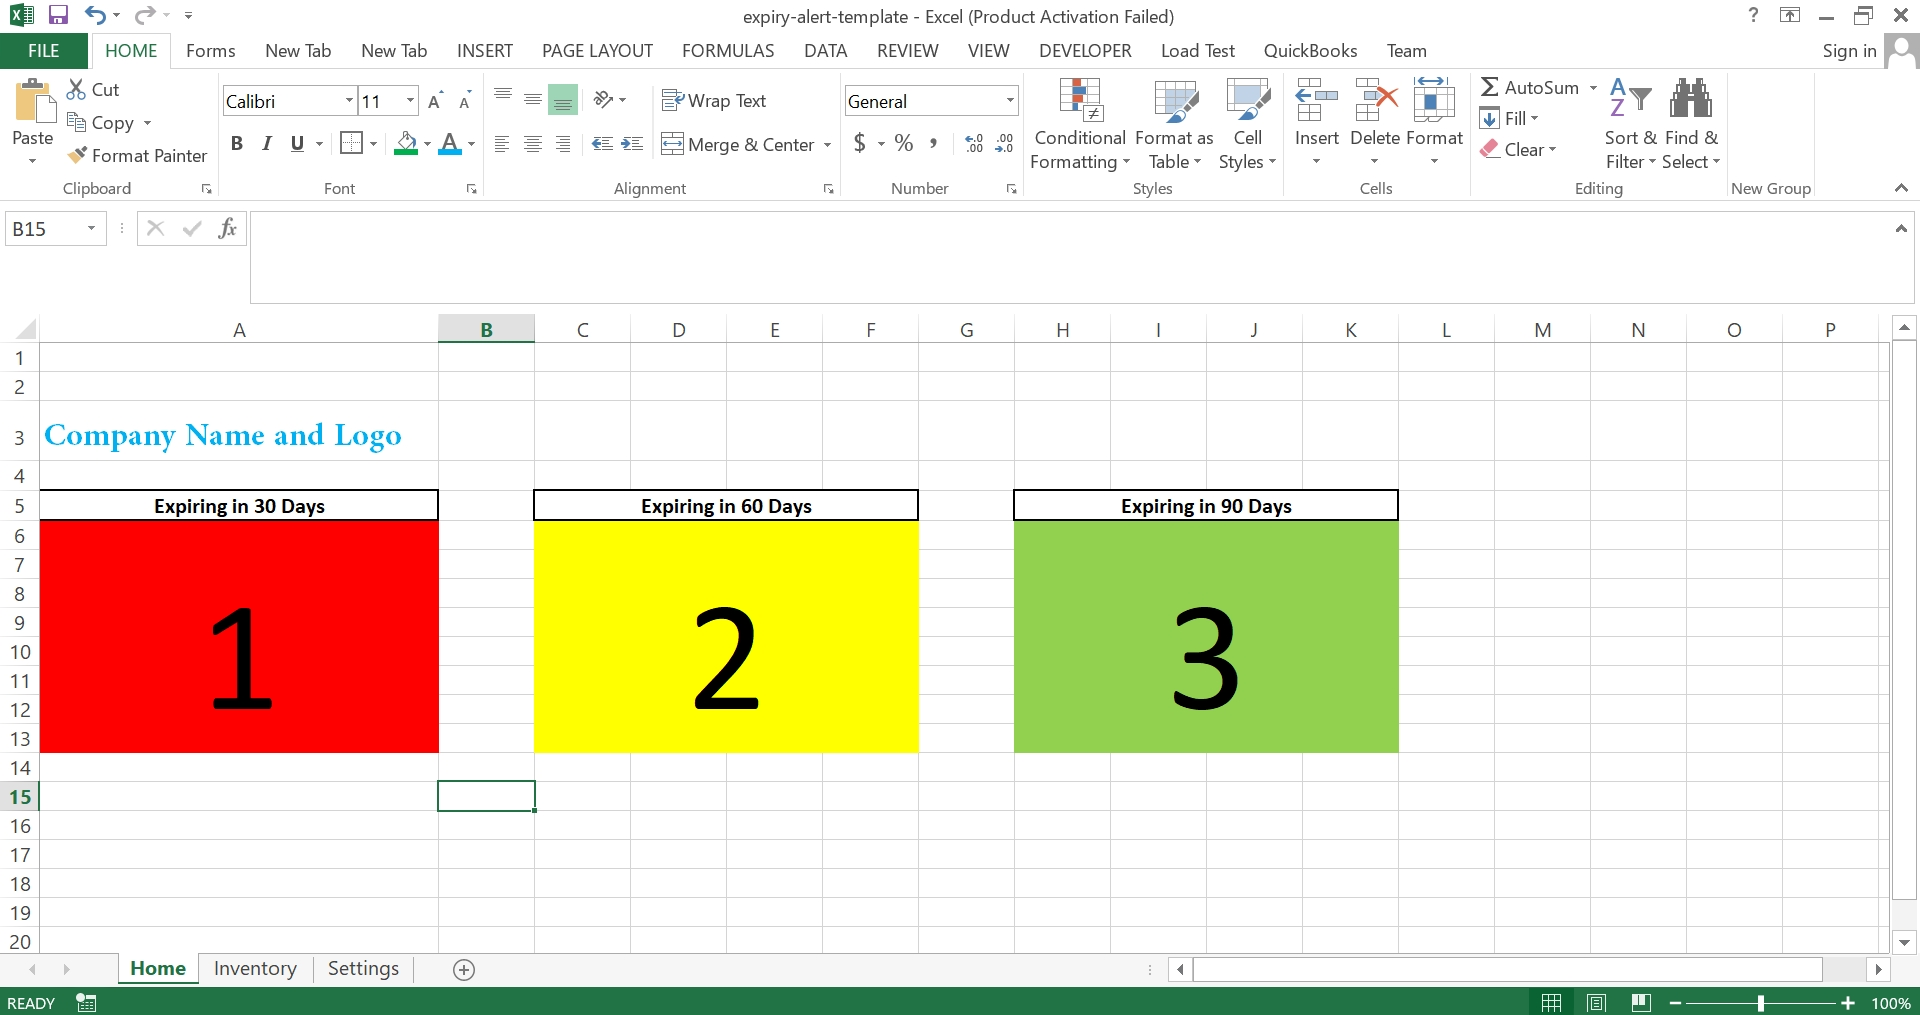 Product Expiry And Alert Excel Template :: Softwarehub Ng